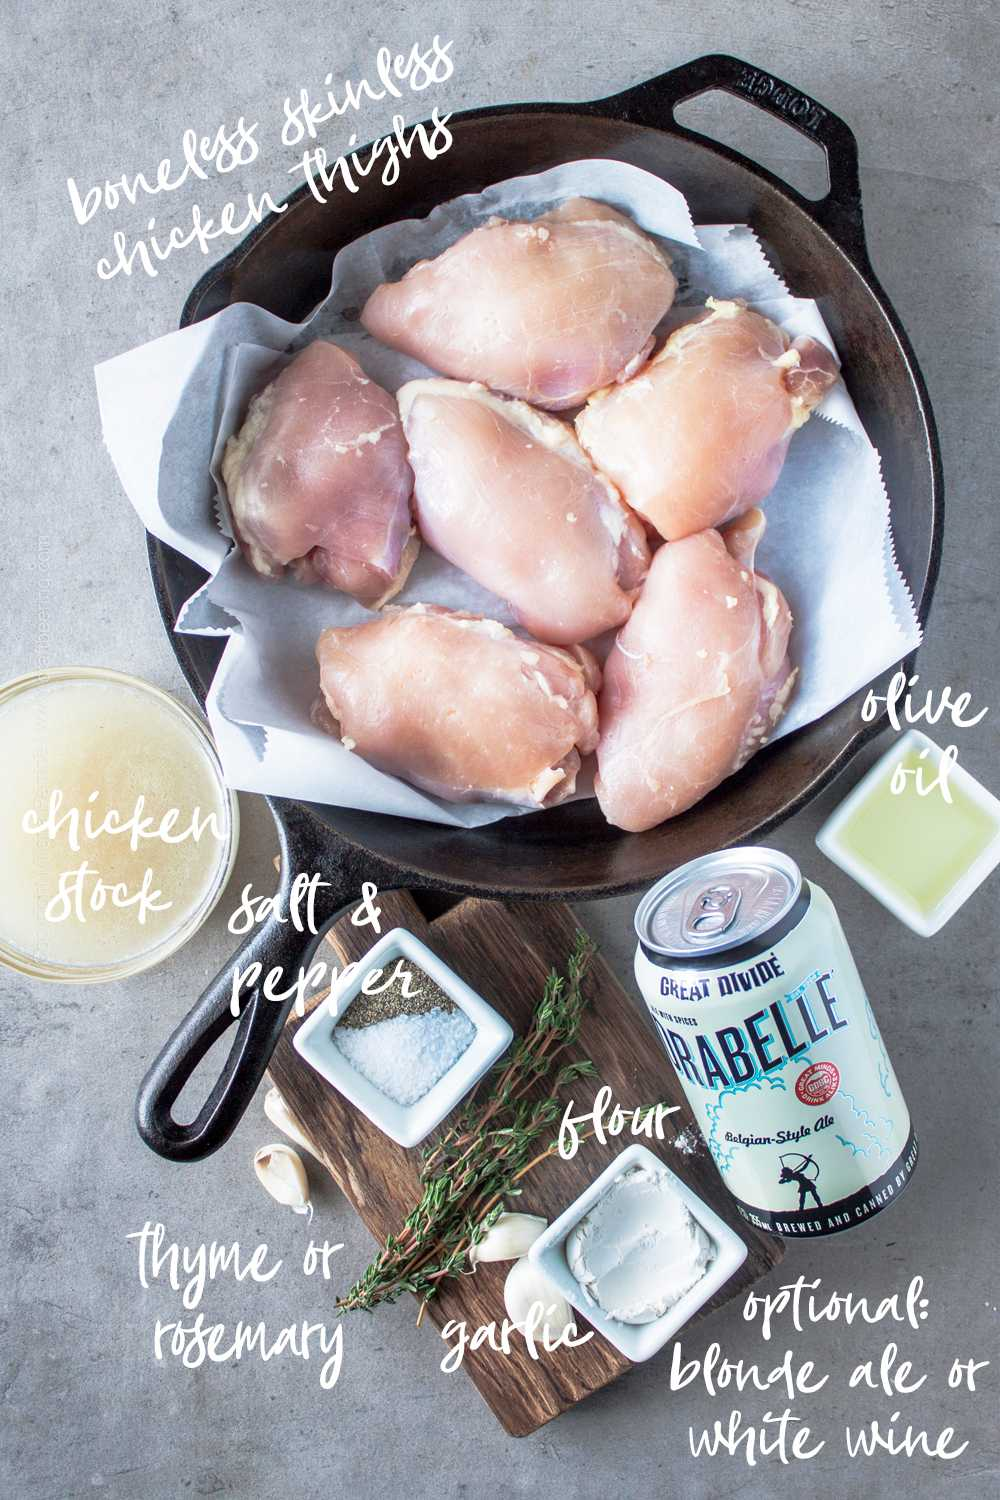 Basic ingredients for oven or stove top boneless chicken thighs in cast iron skillet.